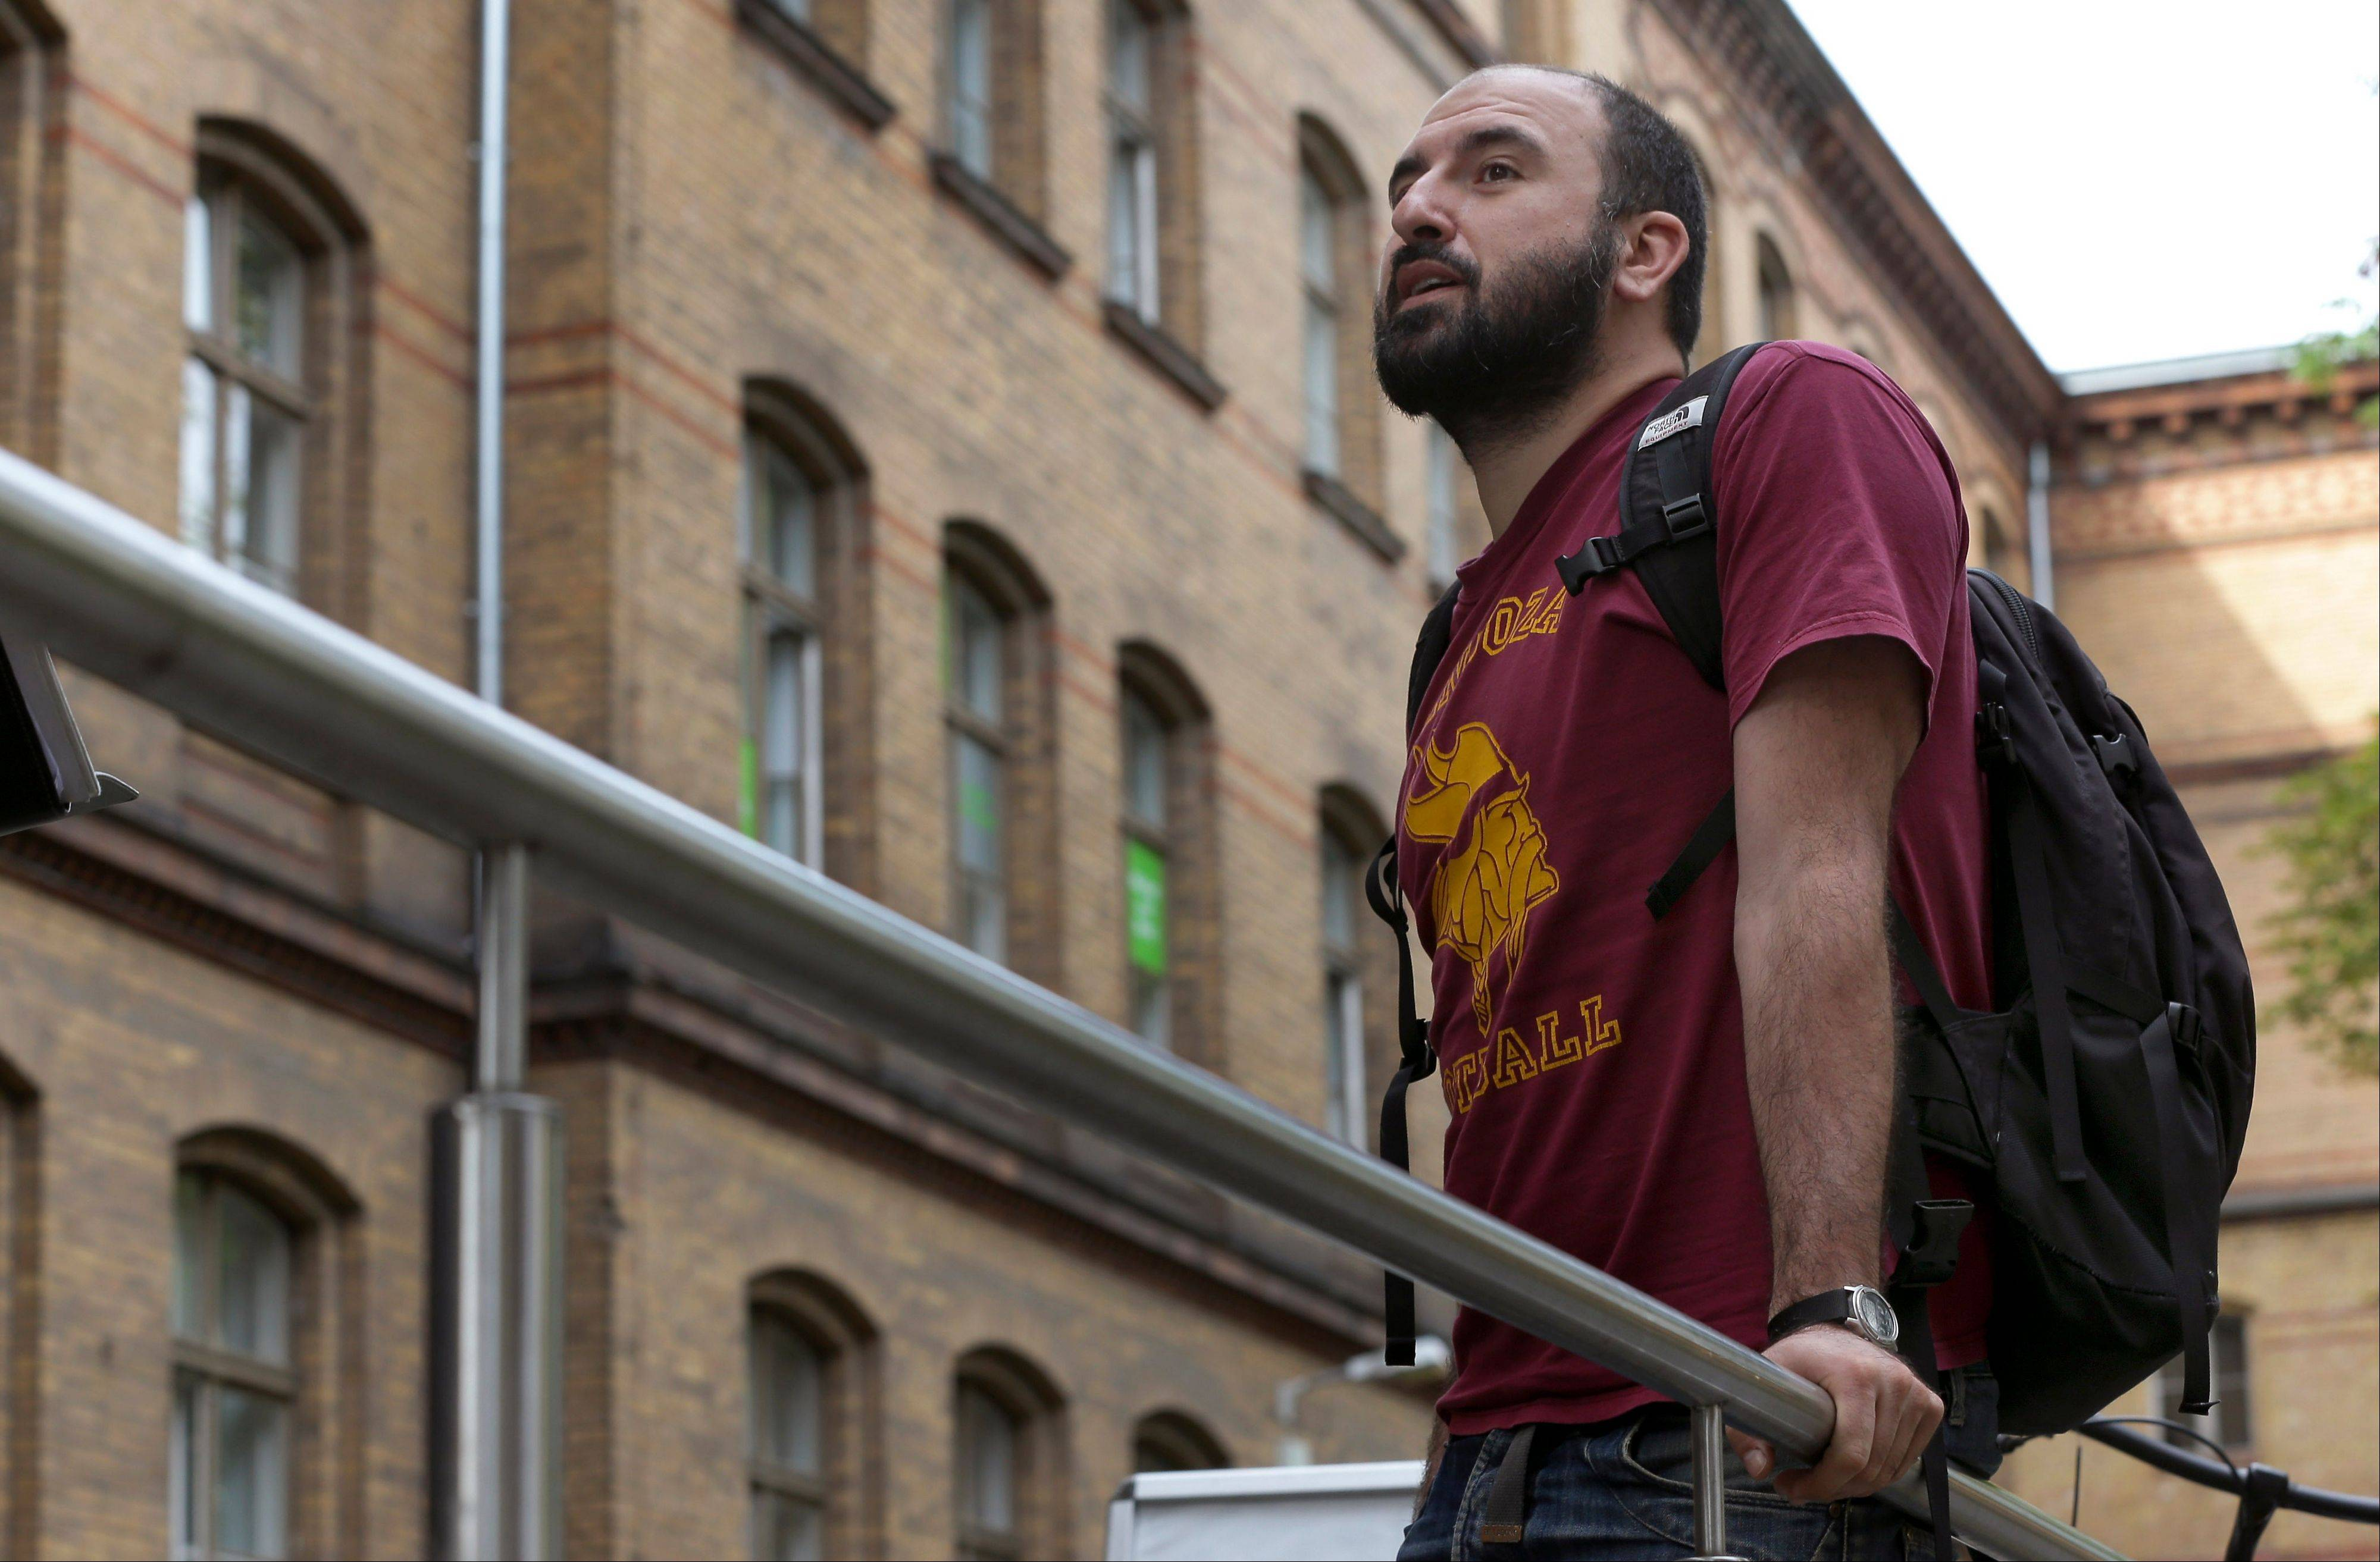 Ricardo de Campano of Spain waits prior to an interview with The Associated Press at the Pankow public language school for foreign students in Berlin, Germany. The European Union was built on a grand vision of free labor markets in which talent could be matched with demand in a seamless and efficient manner, much in the way workers in the U.S. hop across states in search of opportunity. But today only 3 percent of working age EU citizens live in a different EU country, research shows.